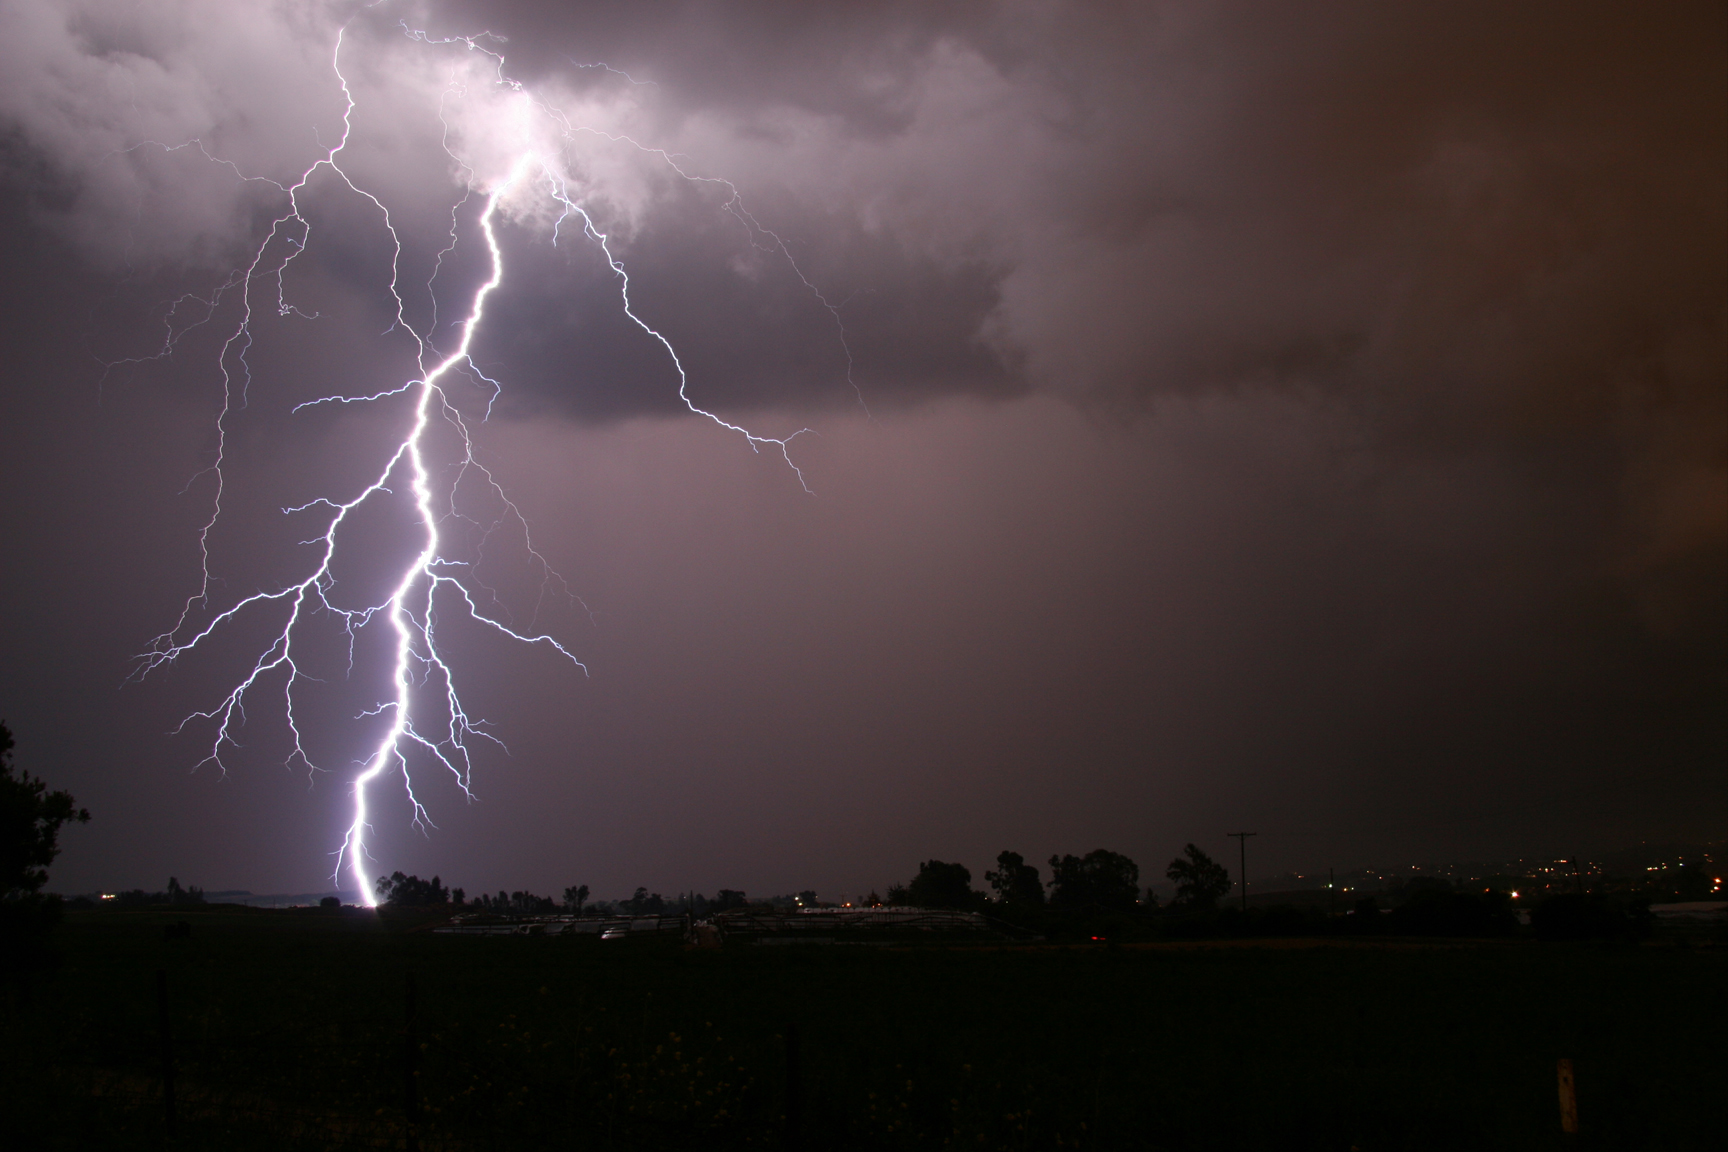 Building the Lightning Detector – New Weather Instructable Published.